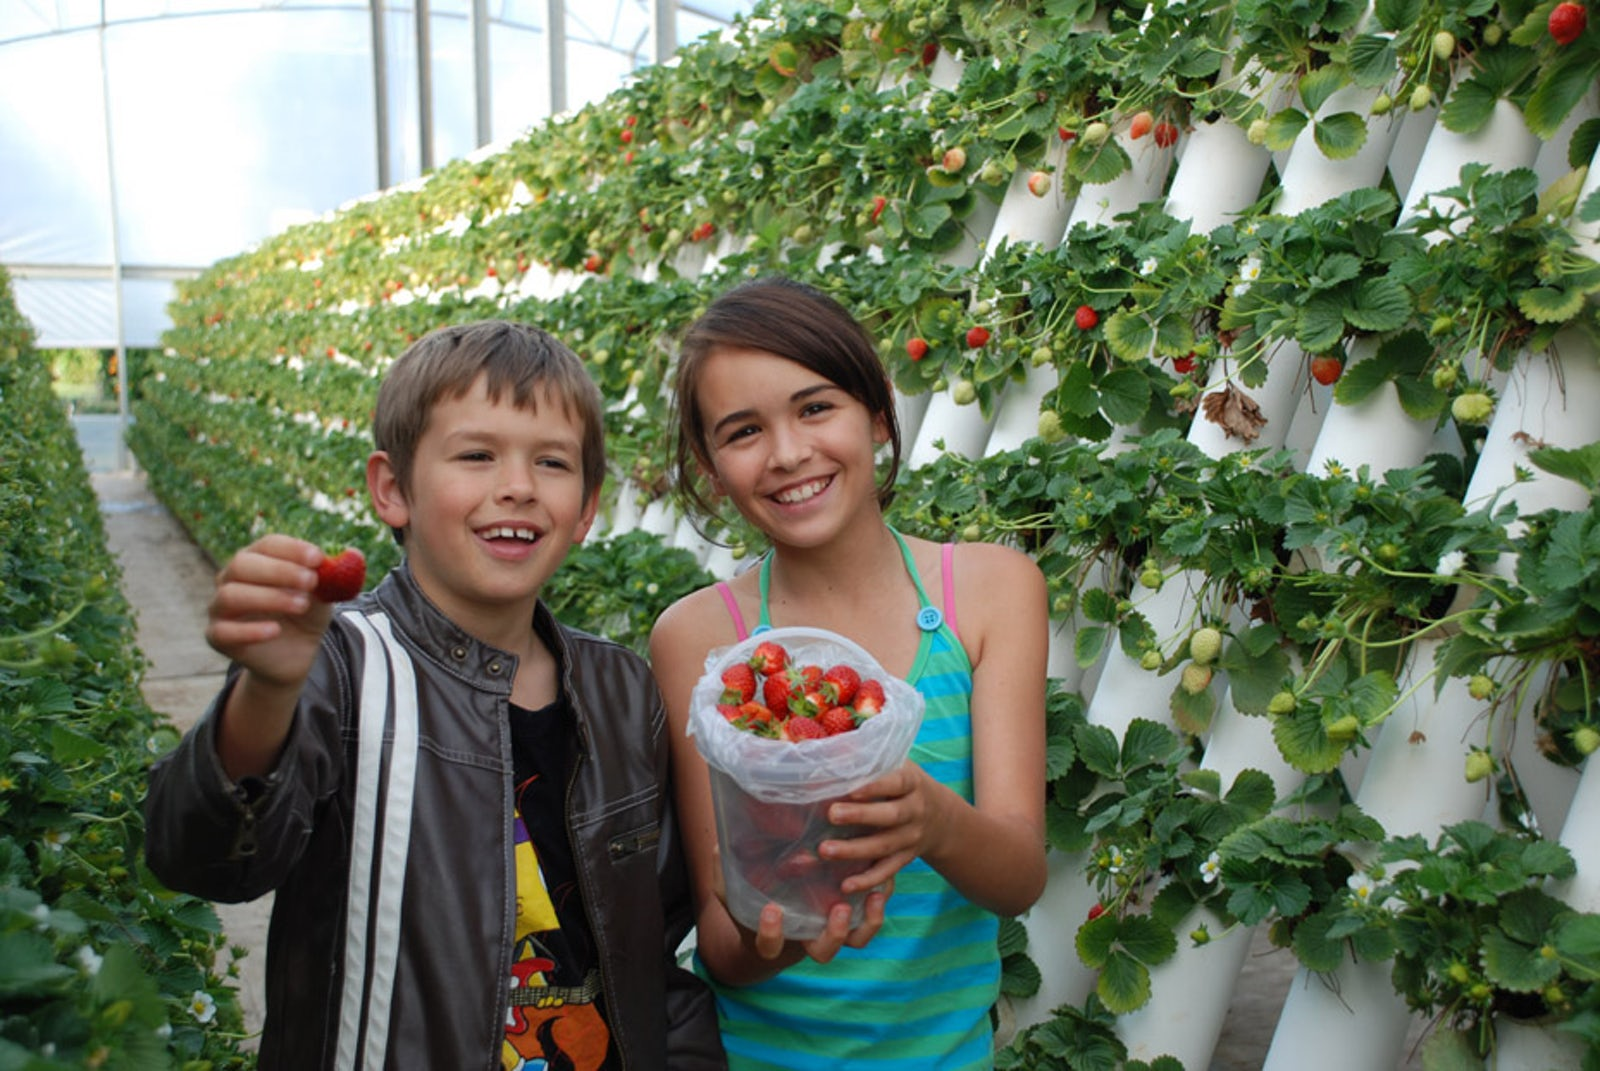 Things to do Port Macquarie Strawberry picking